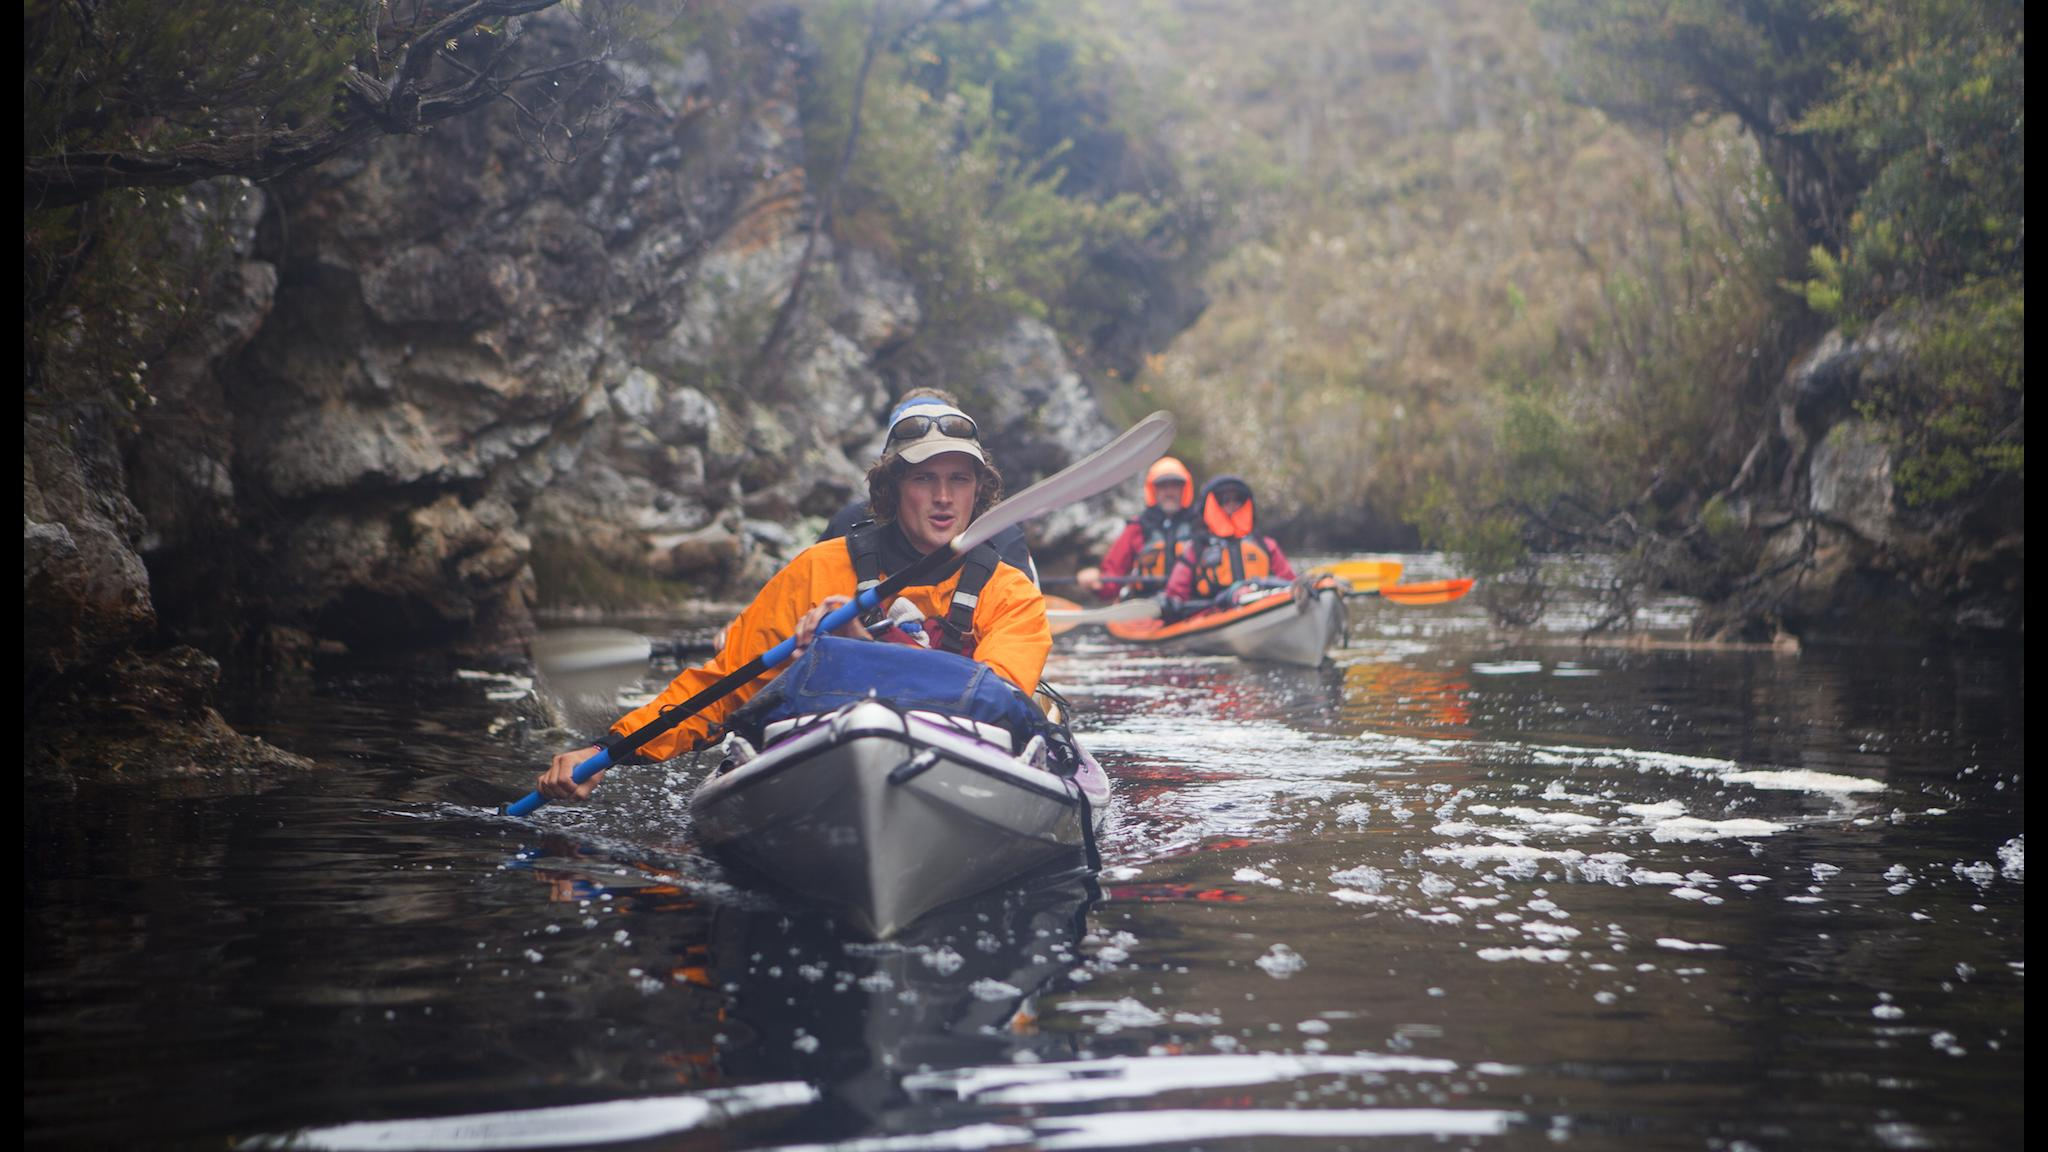 Roaring 40s Kayaking - Kayaking adventures on Blackwater Creek, Port Davey, Southwest Tasmania